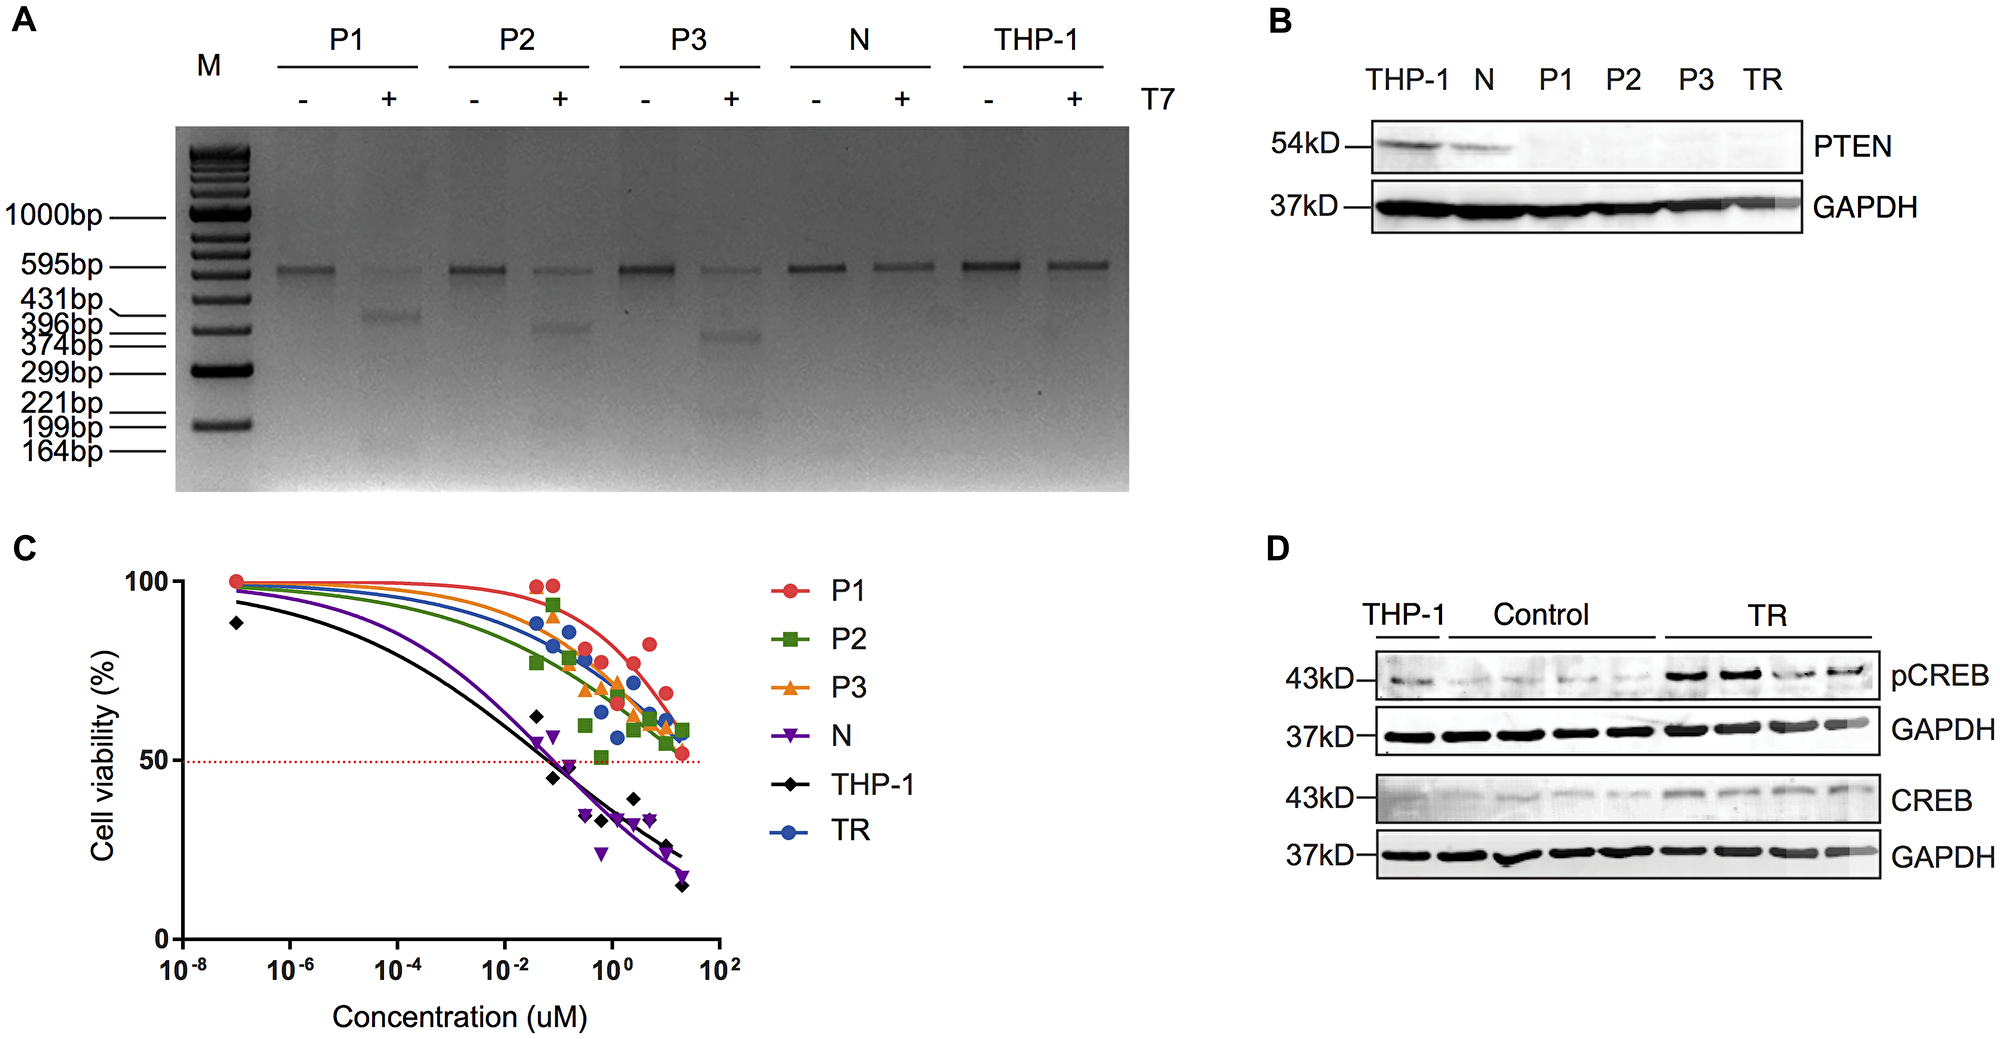 Truncated PTEN is associated with resistance to MEKi via increased activity of CREB.